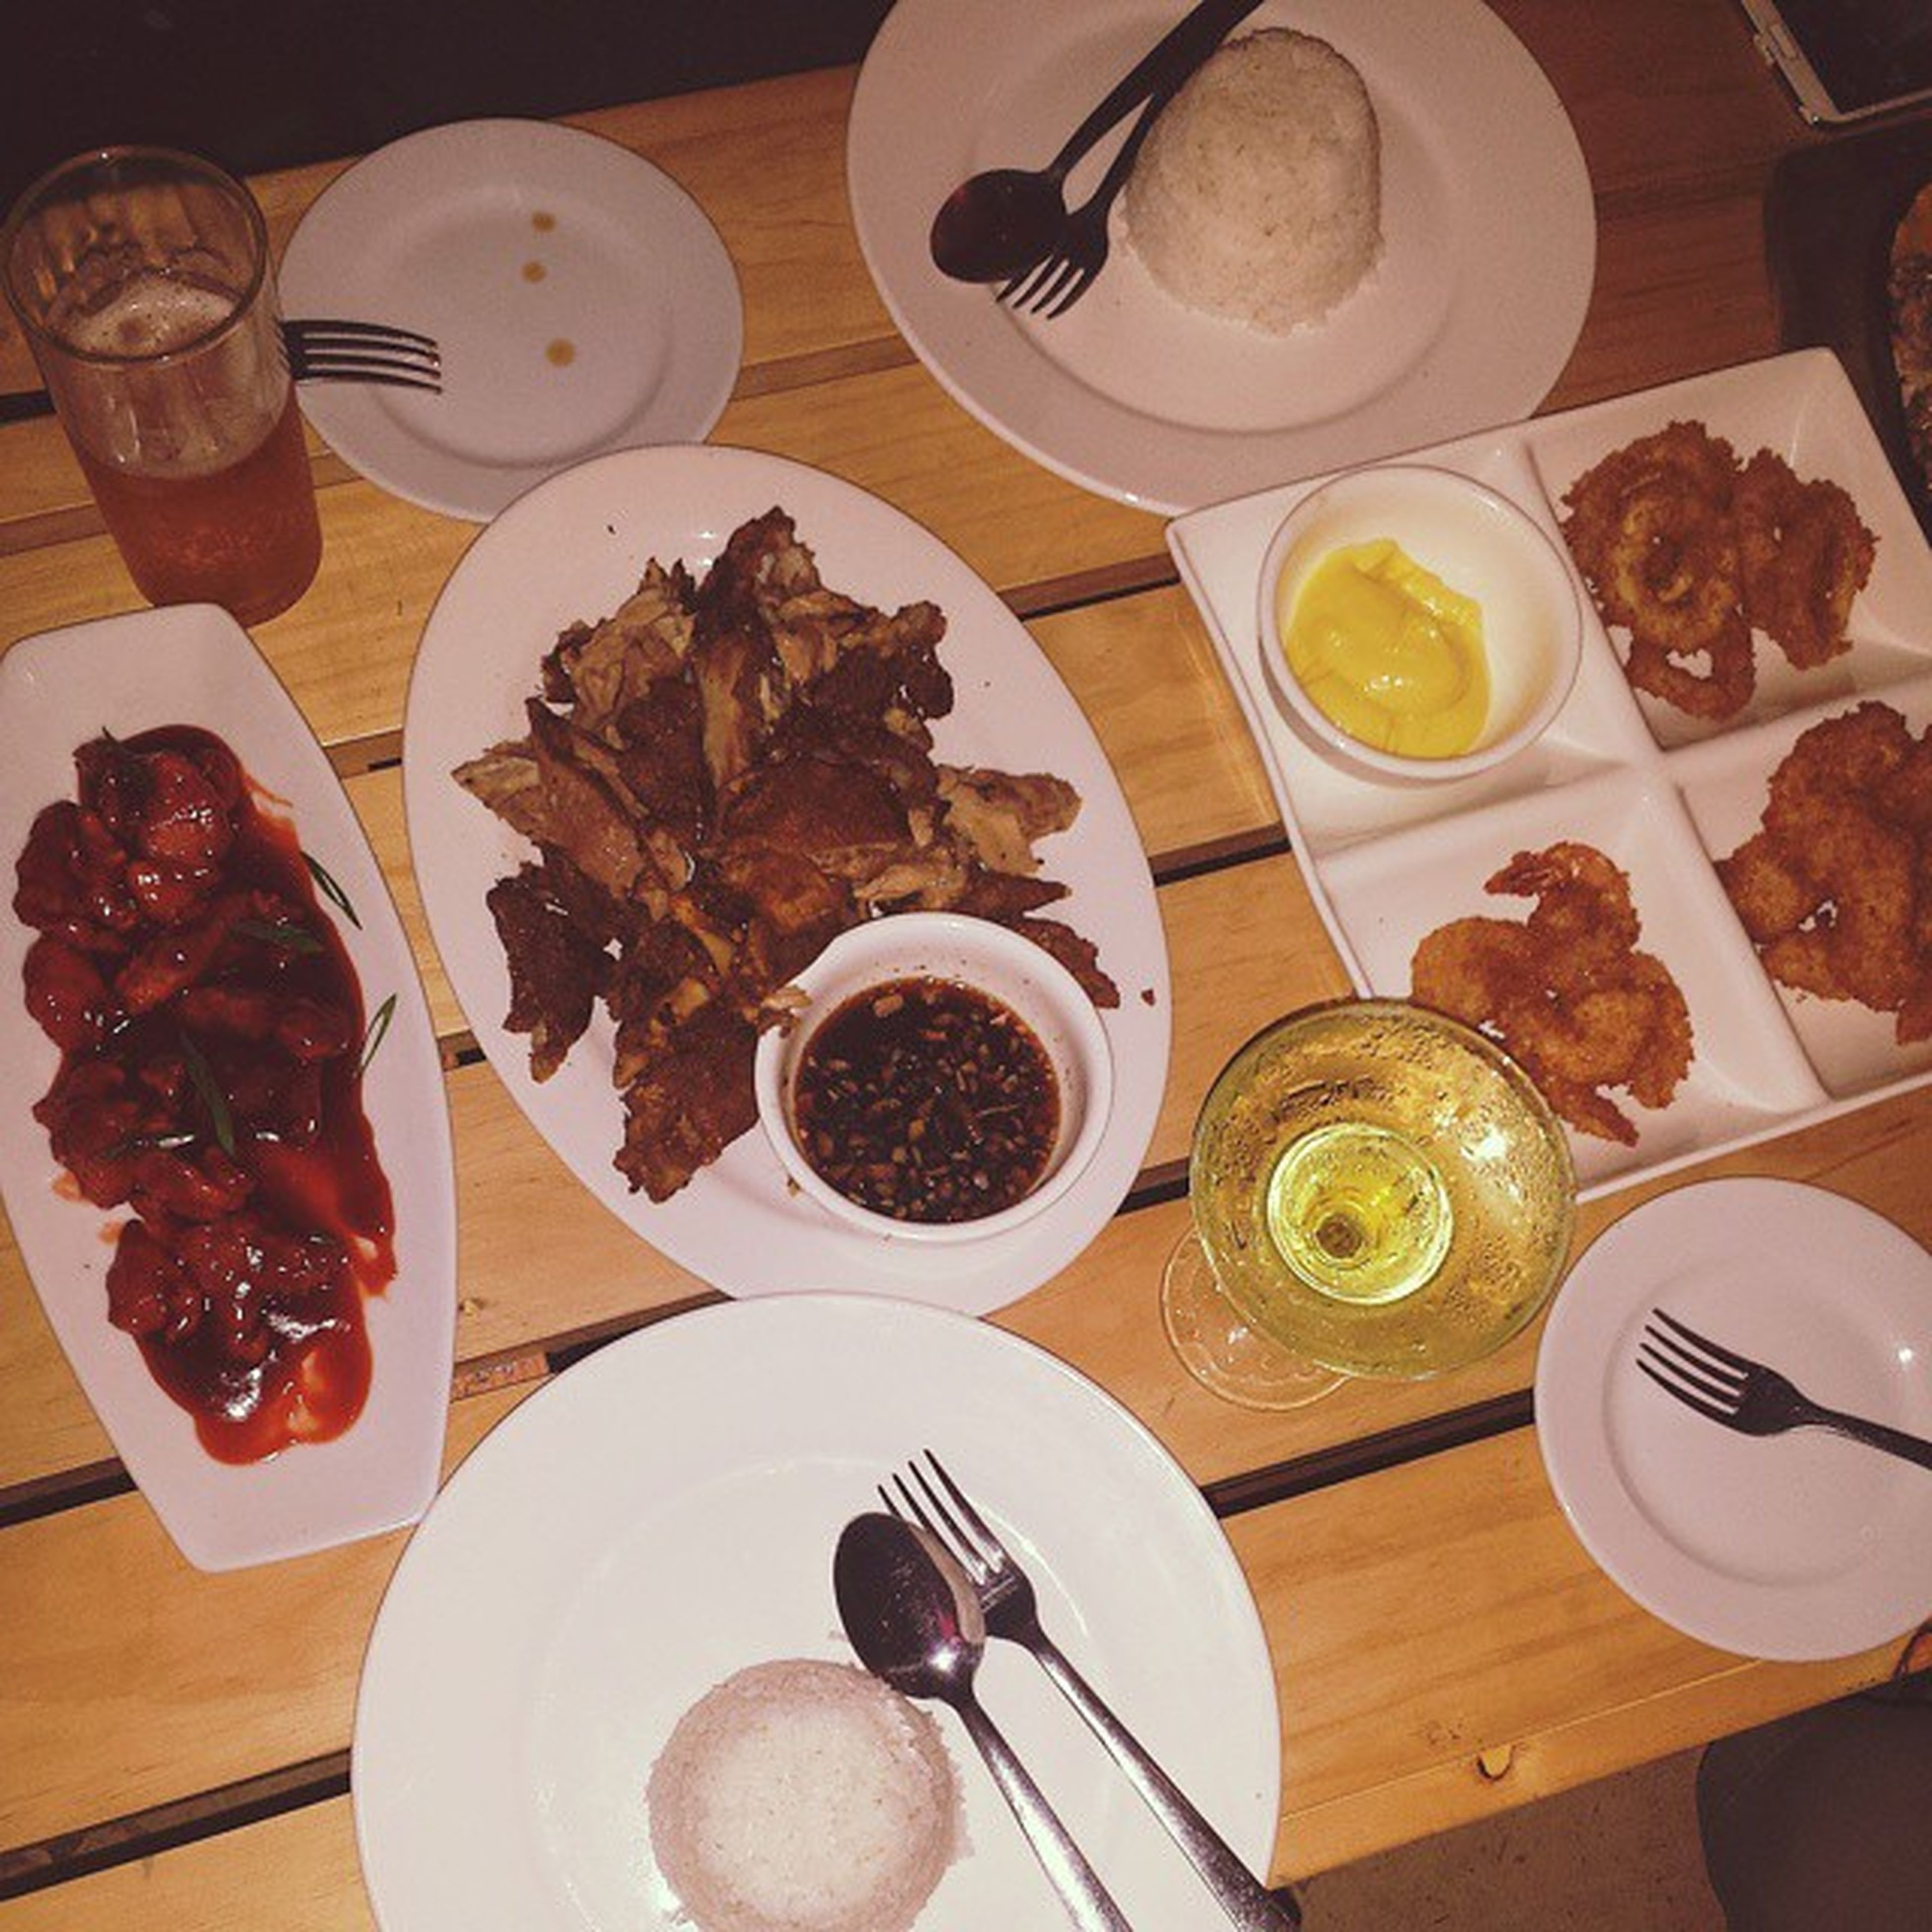 Our kind of night. Arteryclogging Bpplease @dybigdreamer